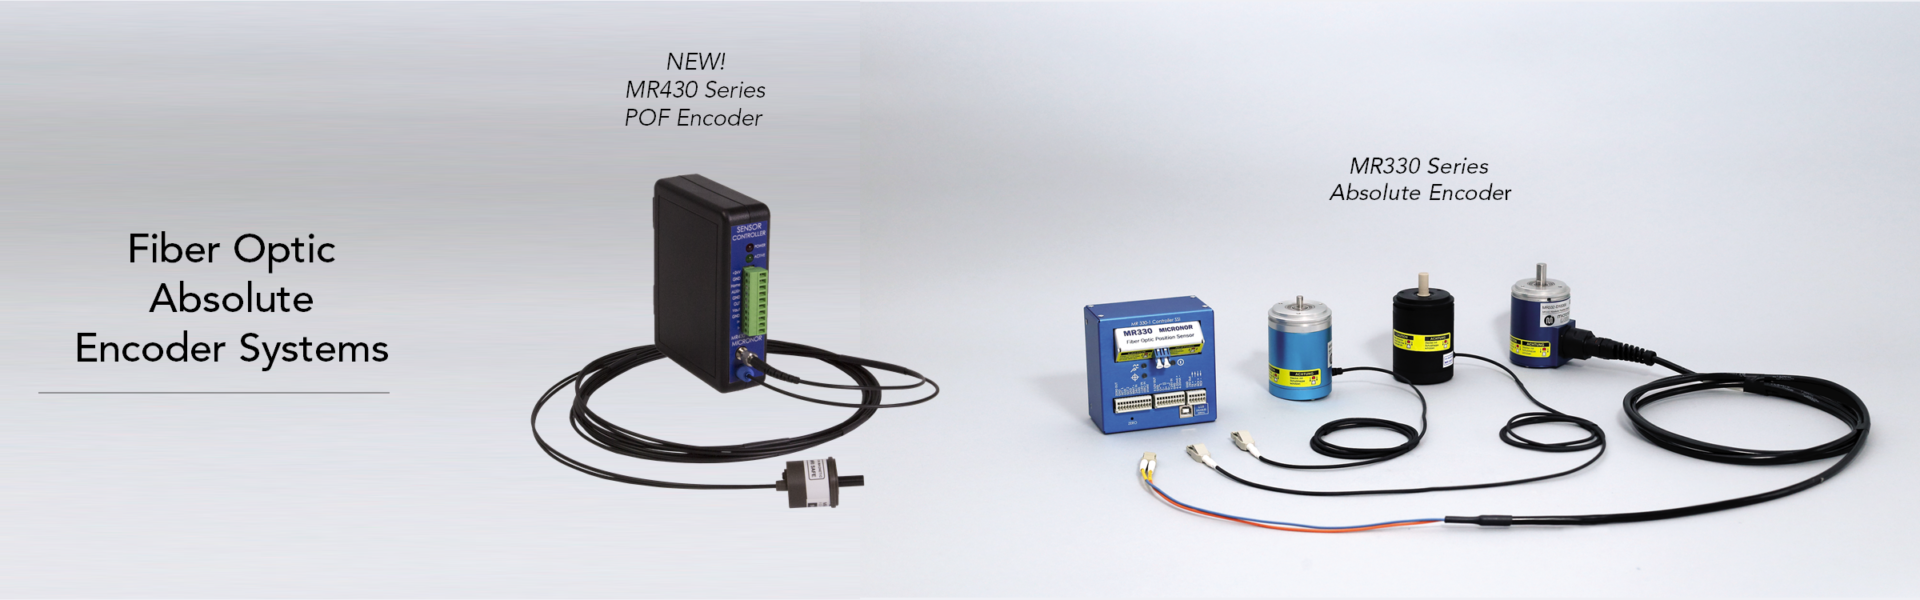 Fiber Optic Absolute Rotary and Linear Encoders and Position Sensors